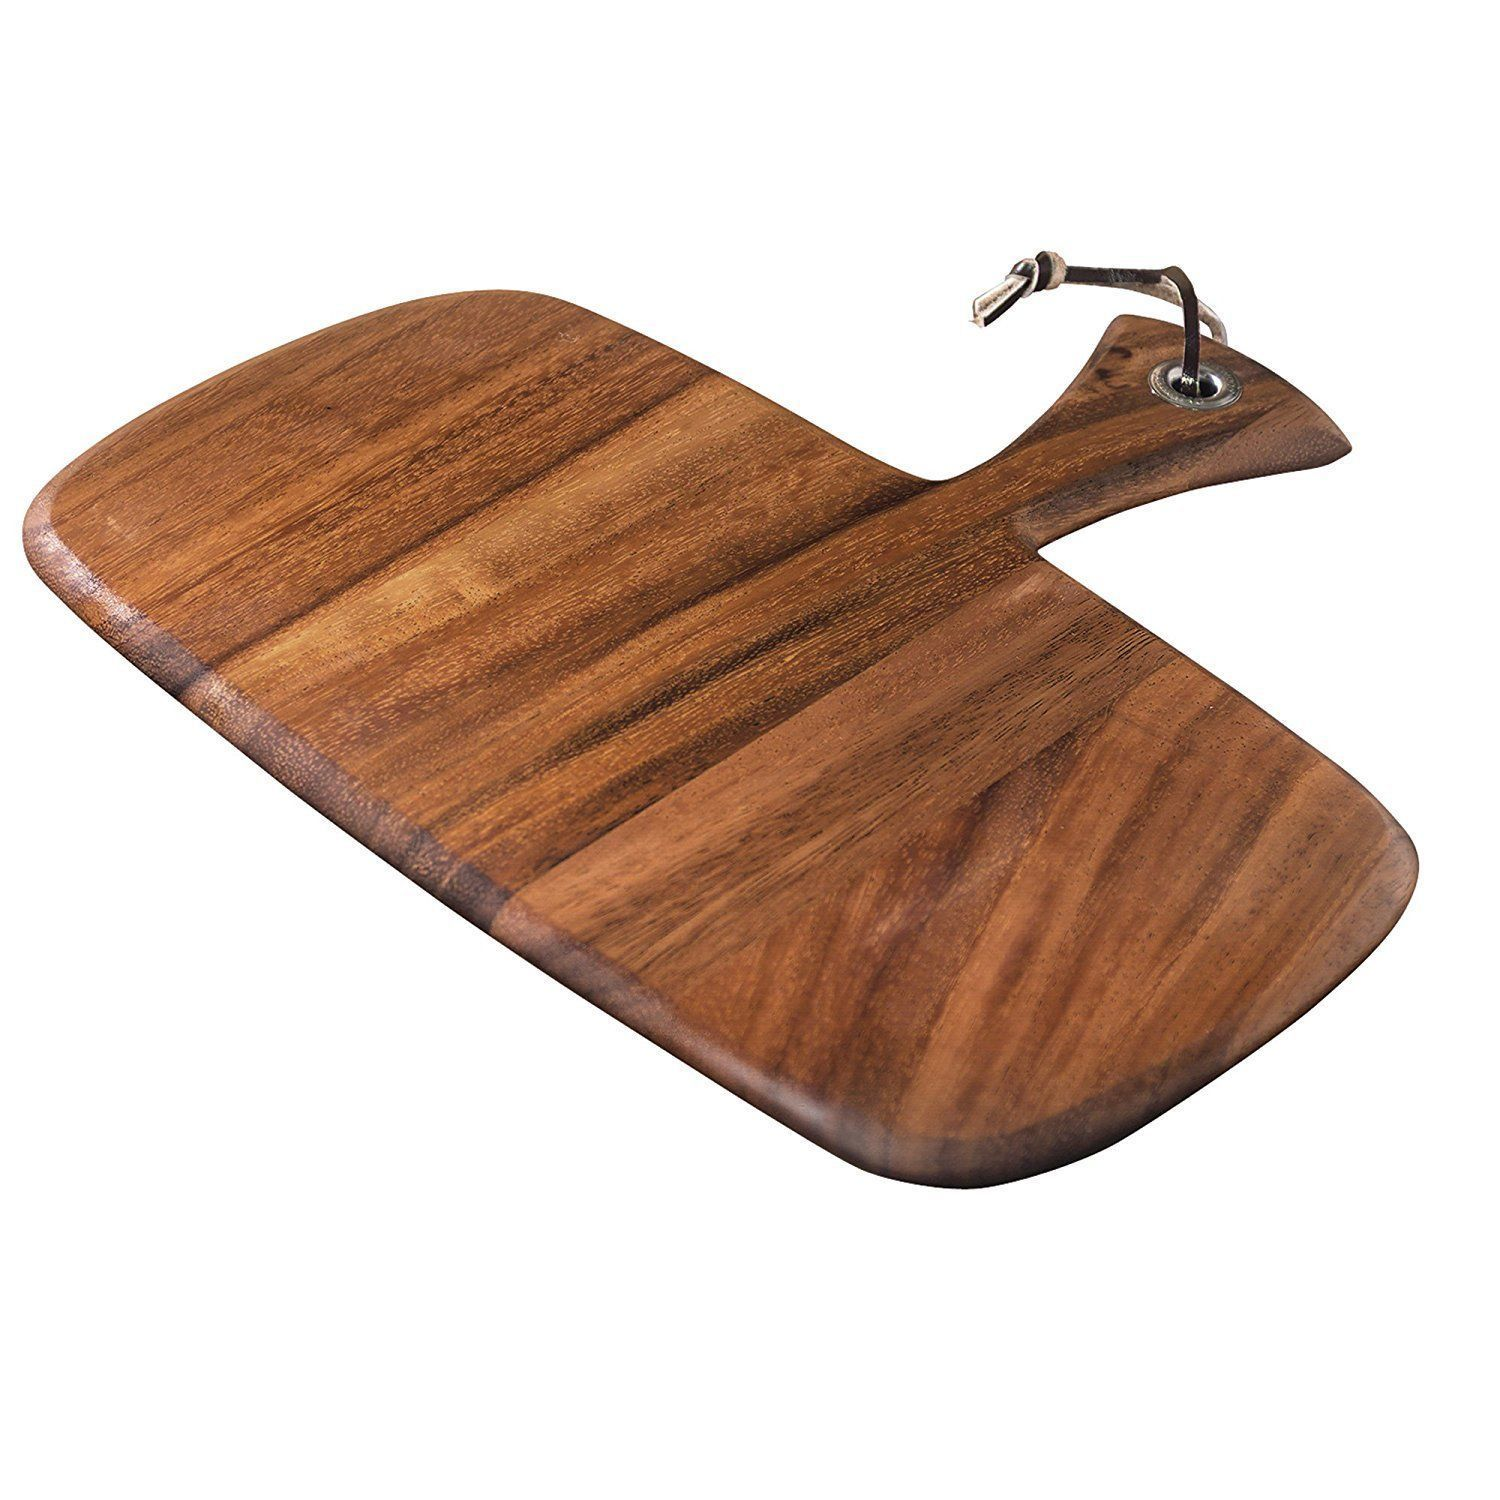 Foxrun Ironwood Gourmet 12-inch Rectangular Paddleboard (...